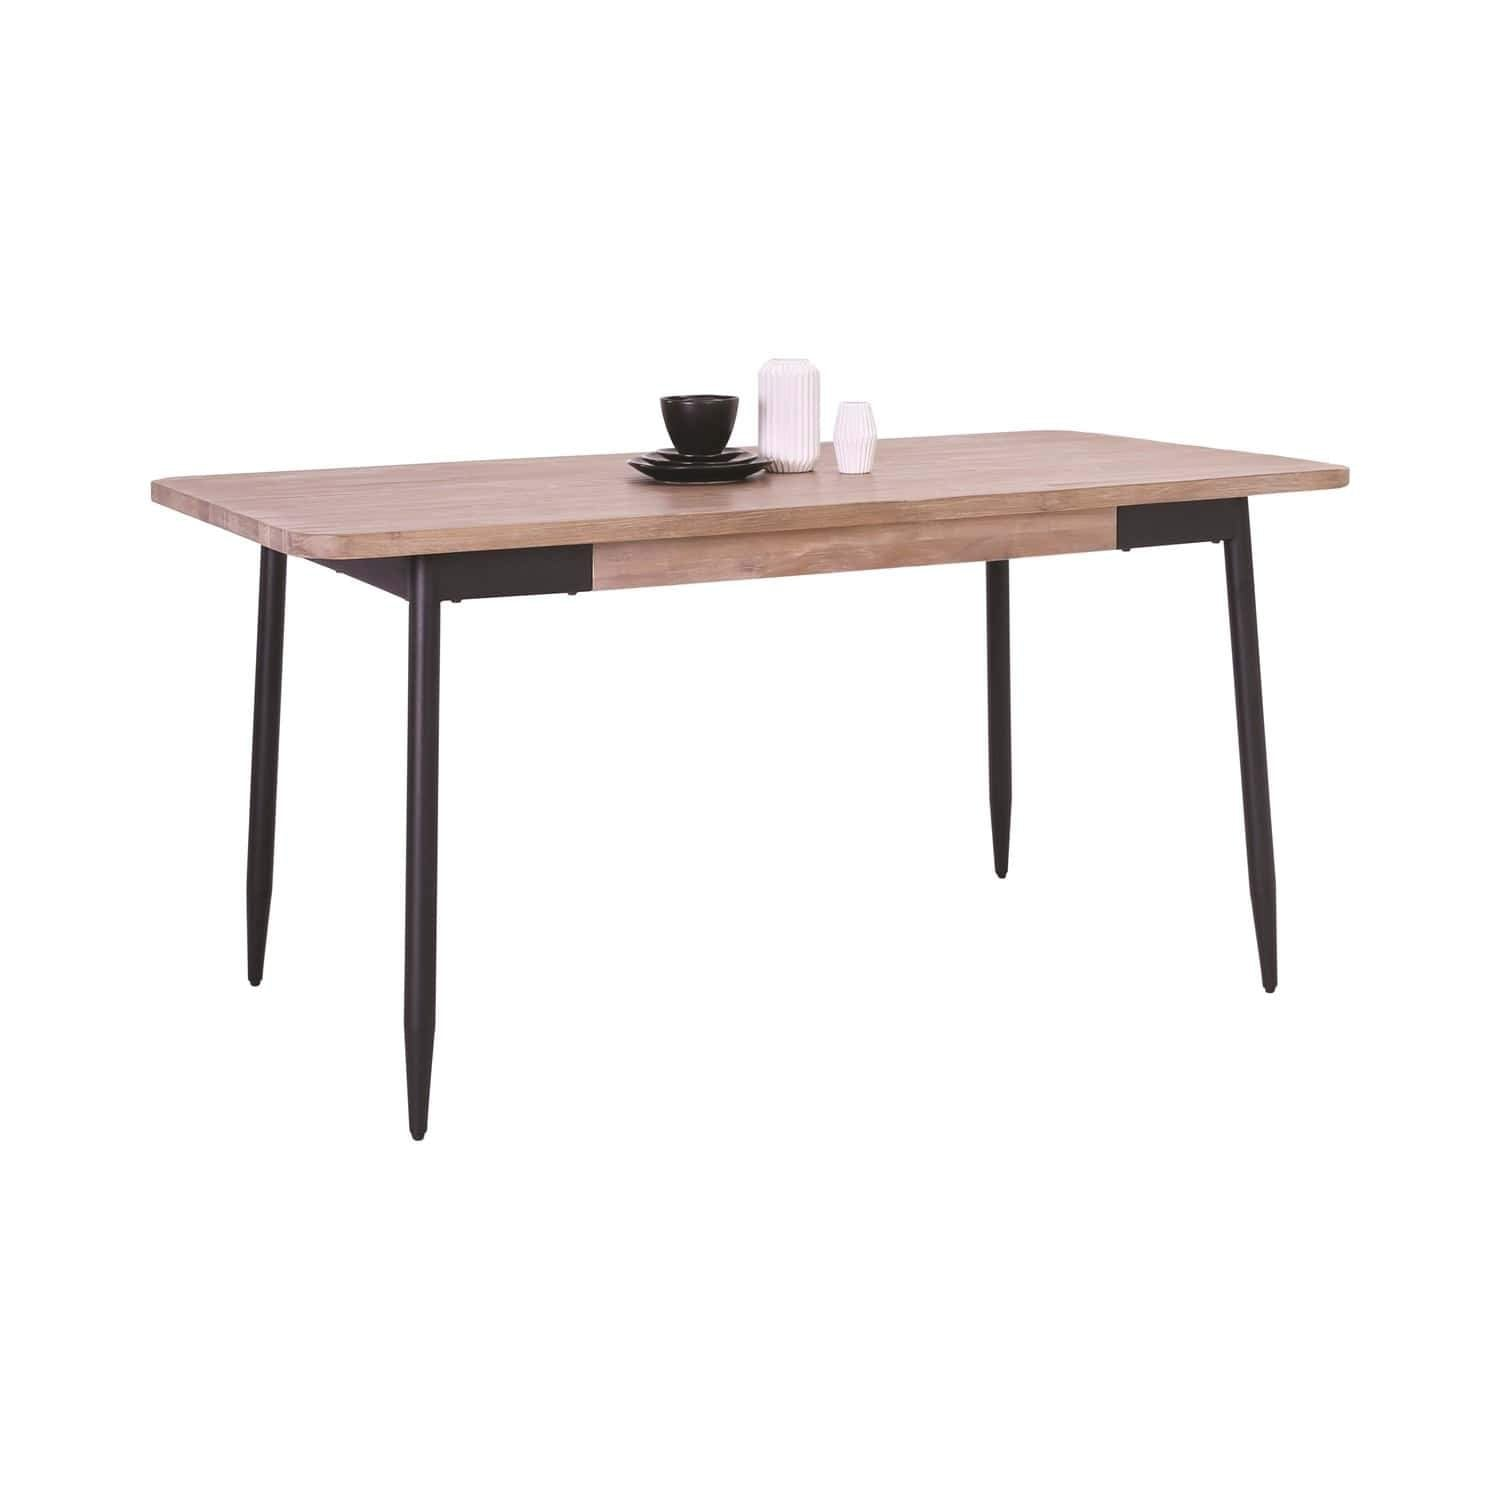 mfdesign88 DACHI 2.0M Dining Table In Taupe Colour Top